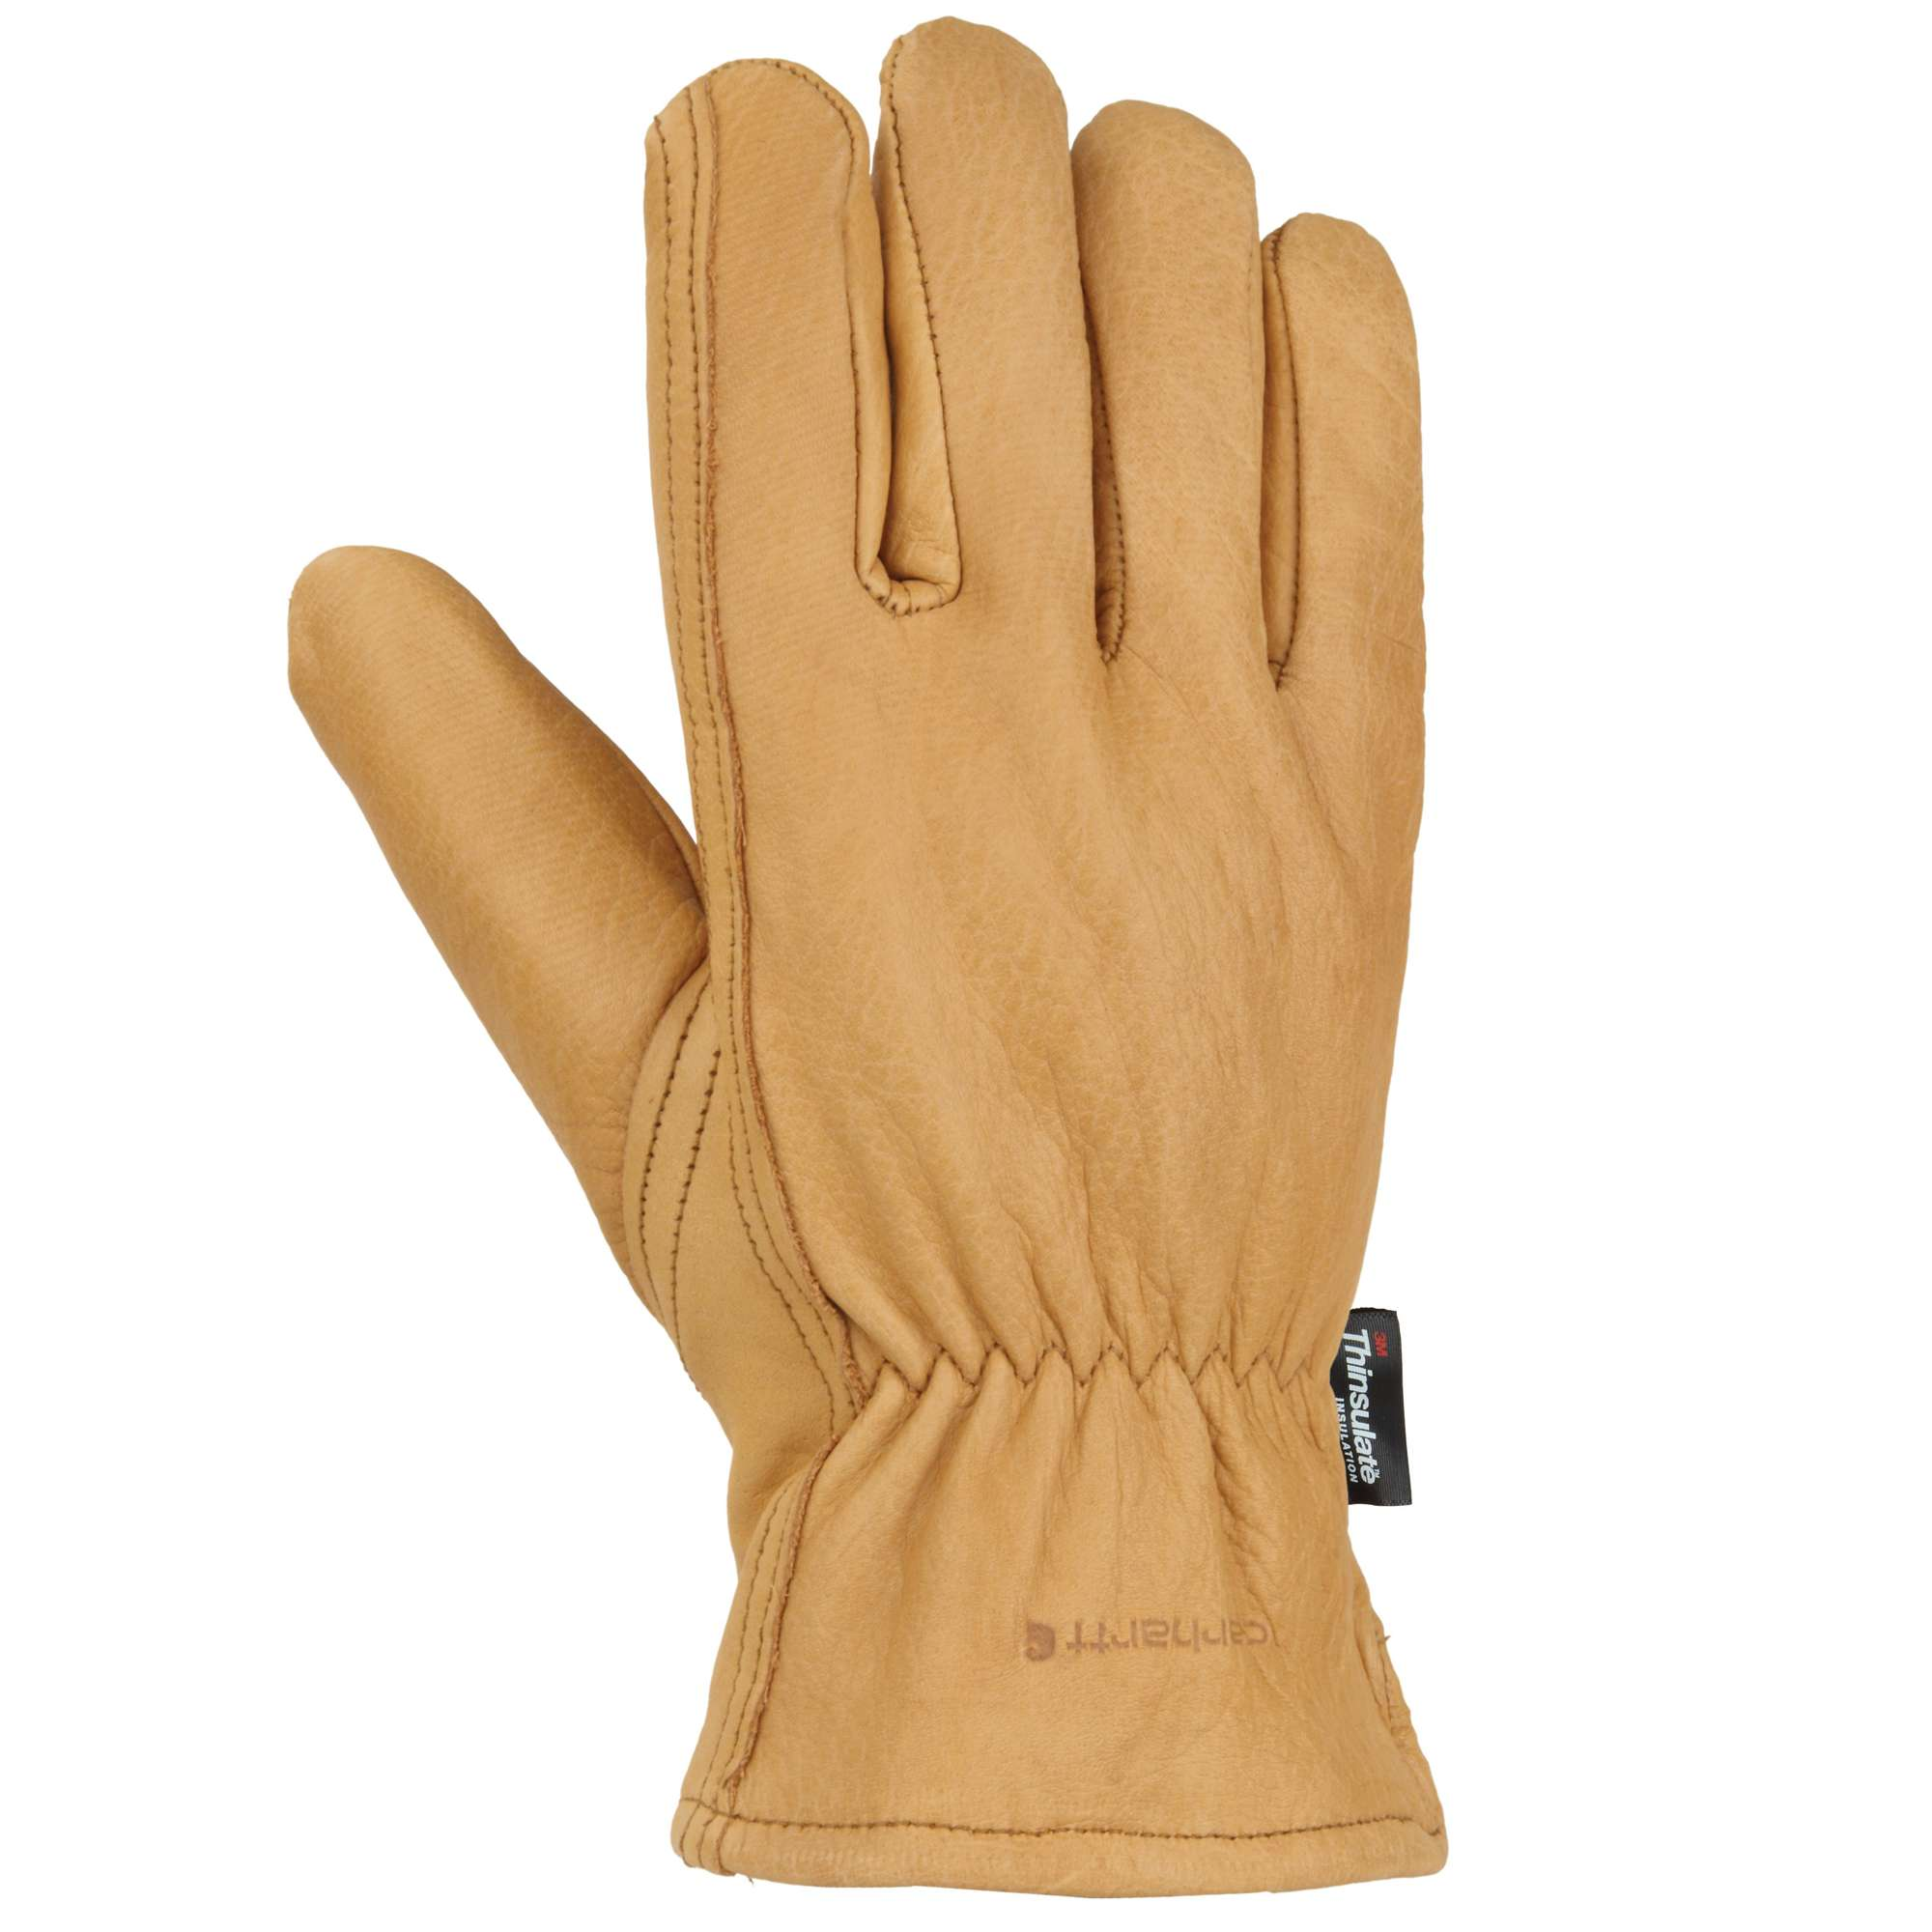 Carhartt Insulated Leather Driver Glove